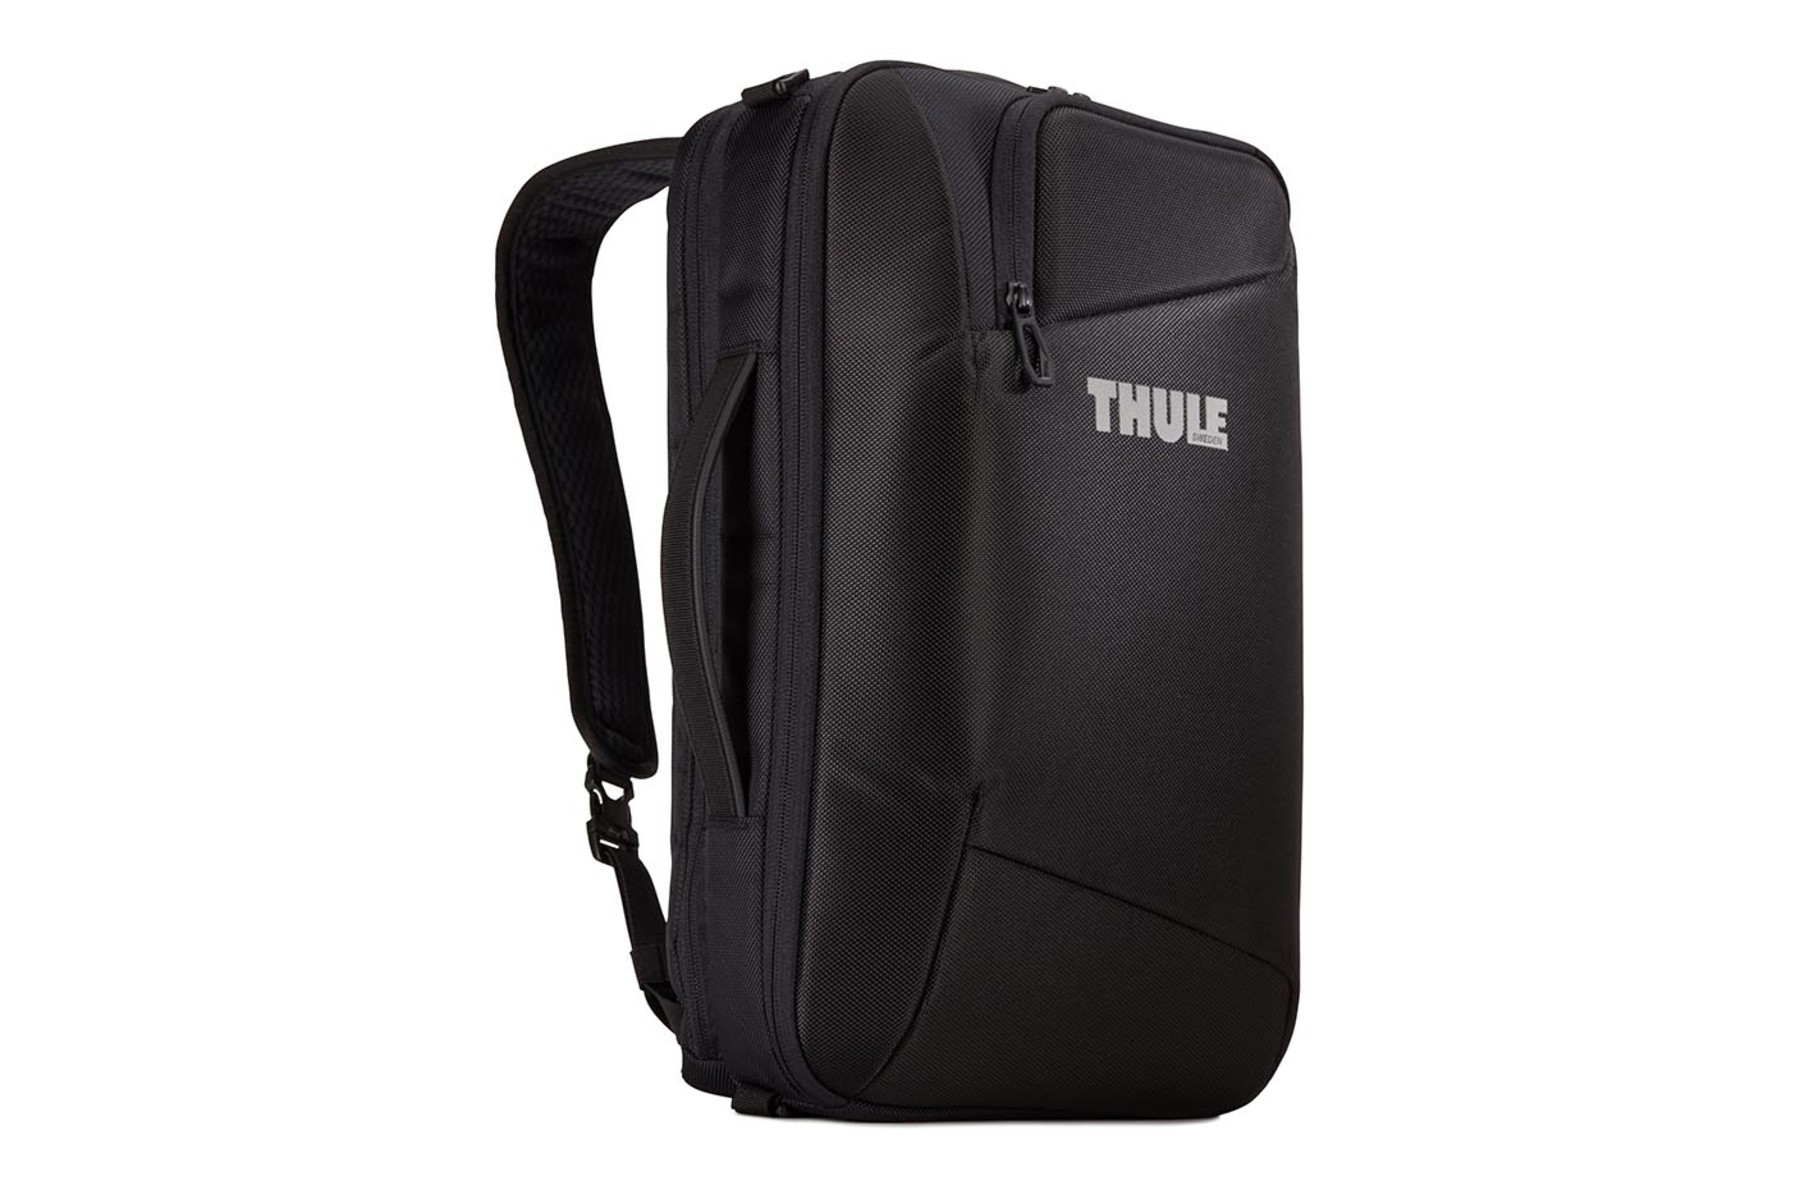 9cd2b3900c4 Thule Accent Laptop Bag 15.6